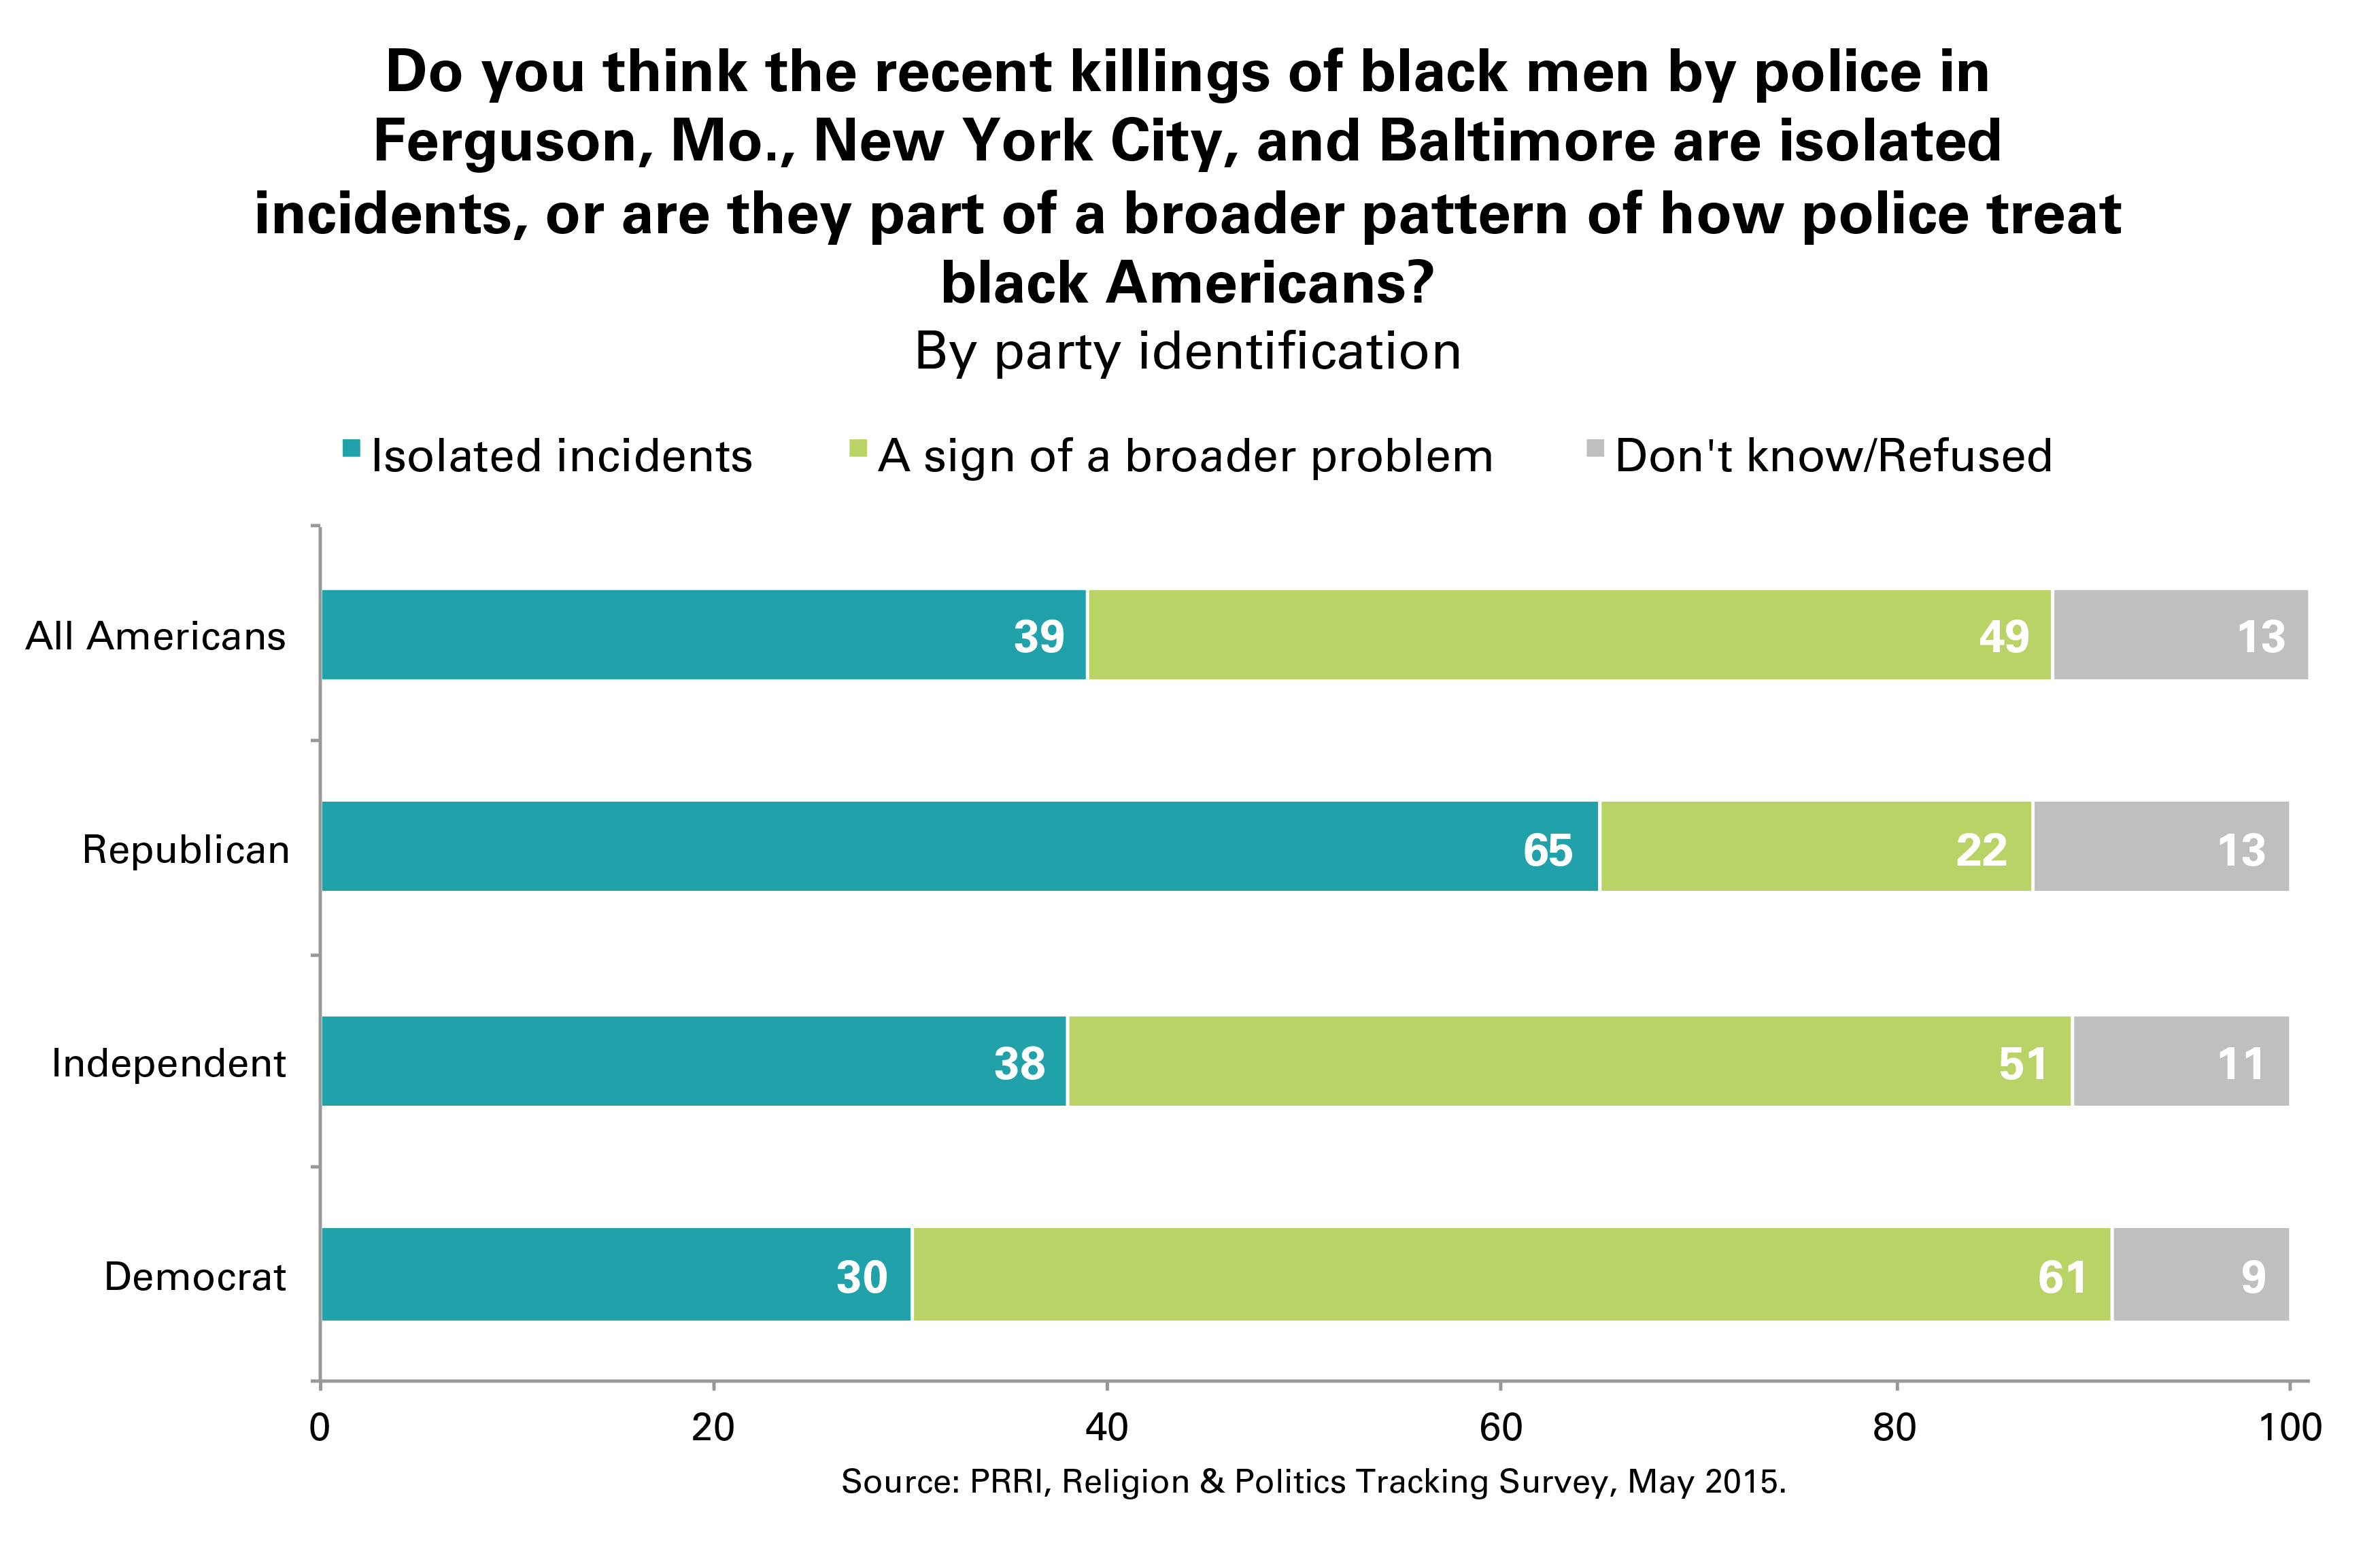 Opinion of recent killings of blacks by police as related to possible trend, May 2015